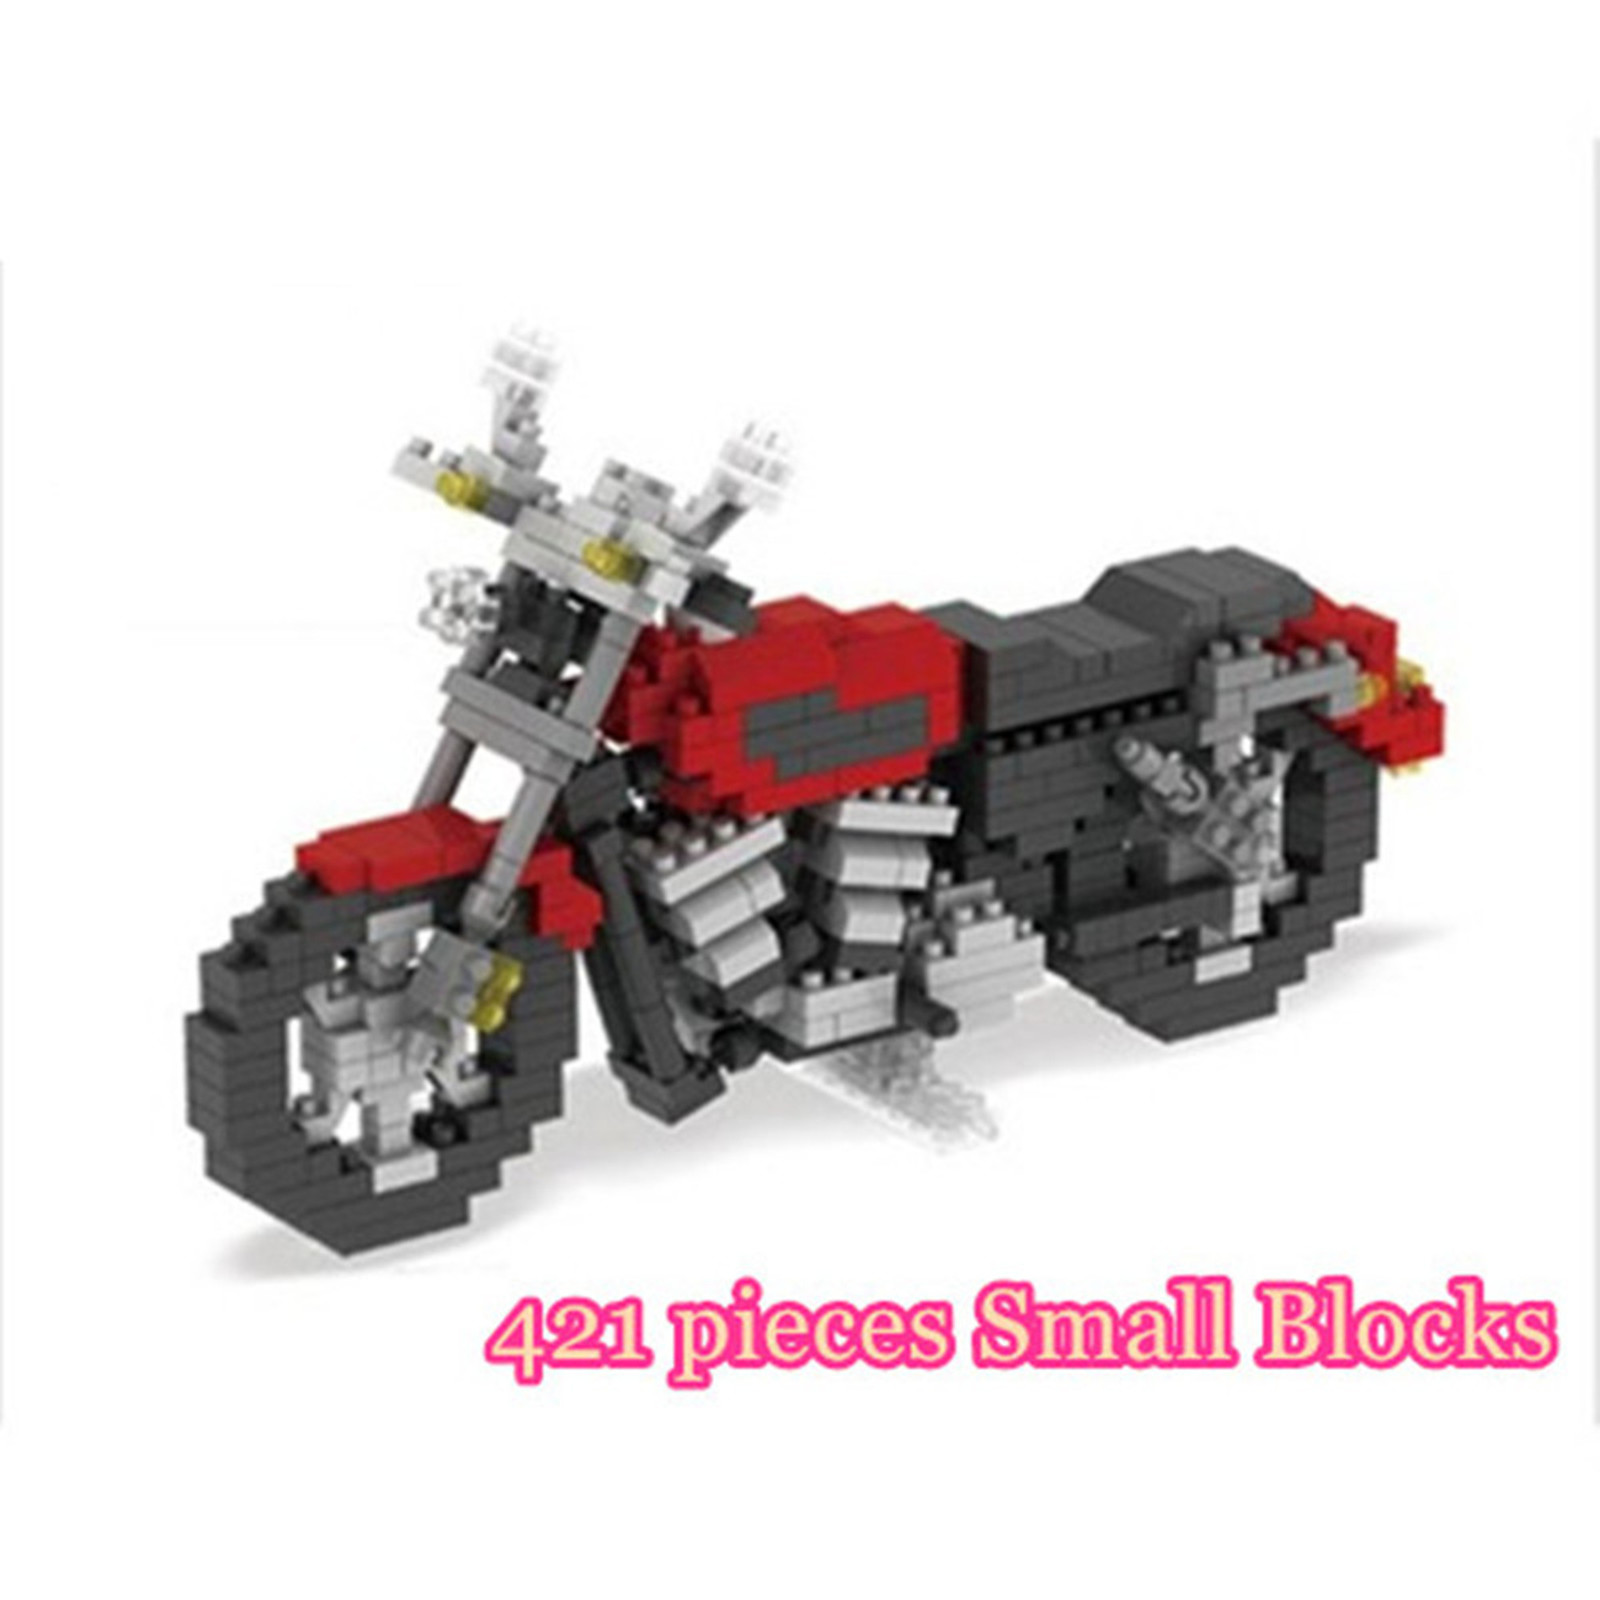 Motor block children s toys clearance.jpg 350x350   1